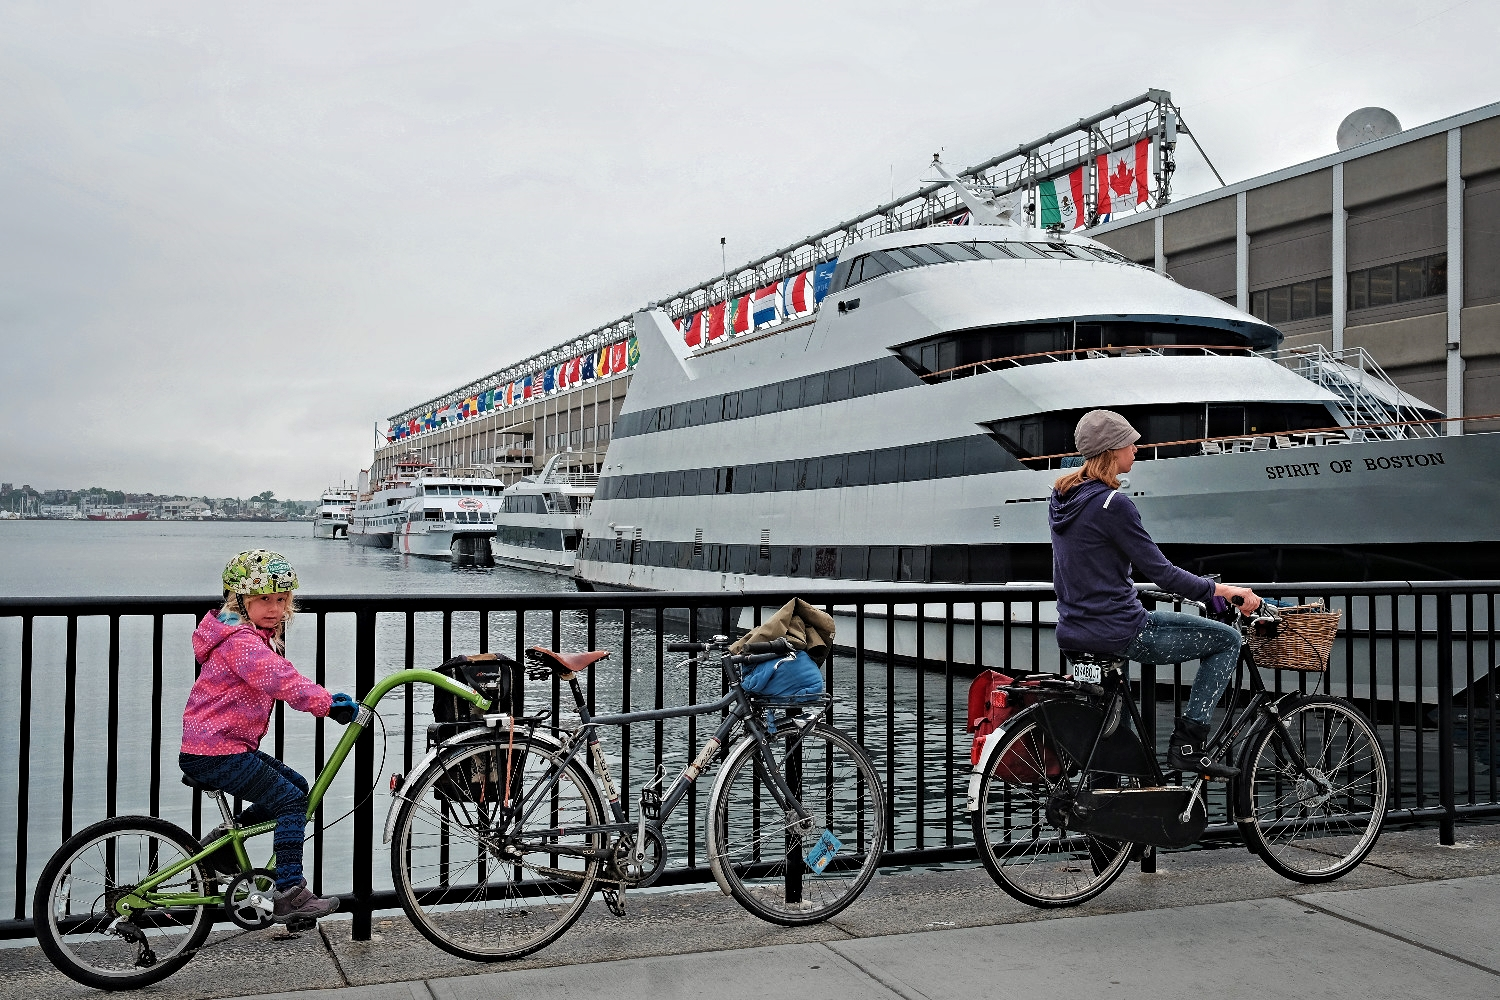 Arriving at the World Trade Center's terminal for Bay State Cruises, our ferry to Provincetown.